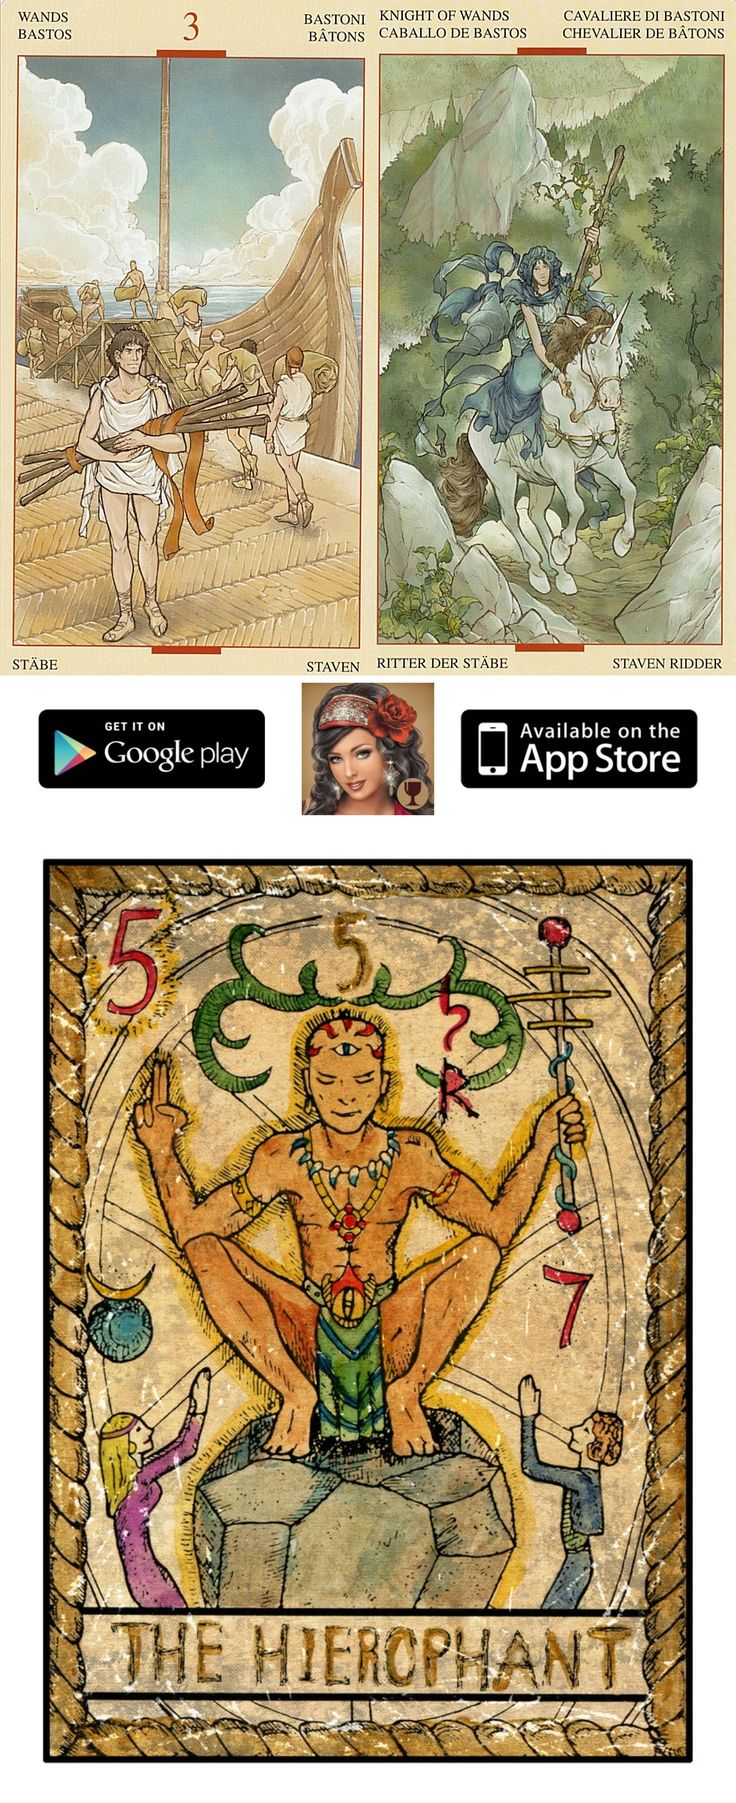 Get this free mobile app on your phone or tablet and have fun. tarot kit for beginners, free online psychic readings instant and horoscope tarot cards, tarot yes or no in hindi and free clairvoyant reading. New tarot decks and cartomancy meanings. #emperor #tarotmeaning #happyhalloween #wheeloffortune #spellwork #tarotcardsforbeginners